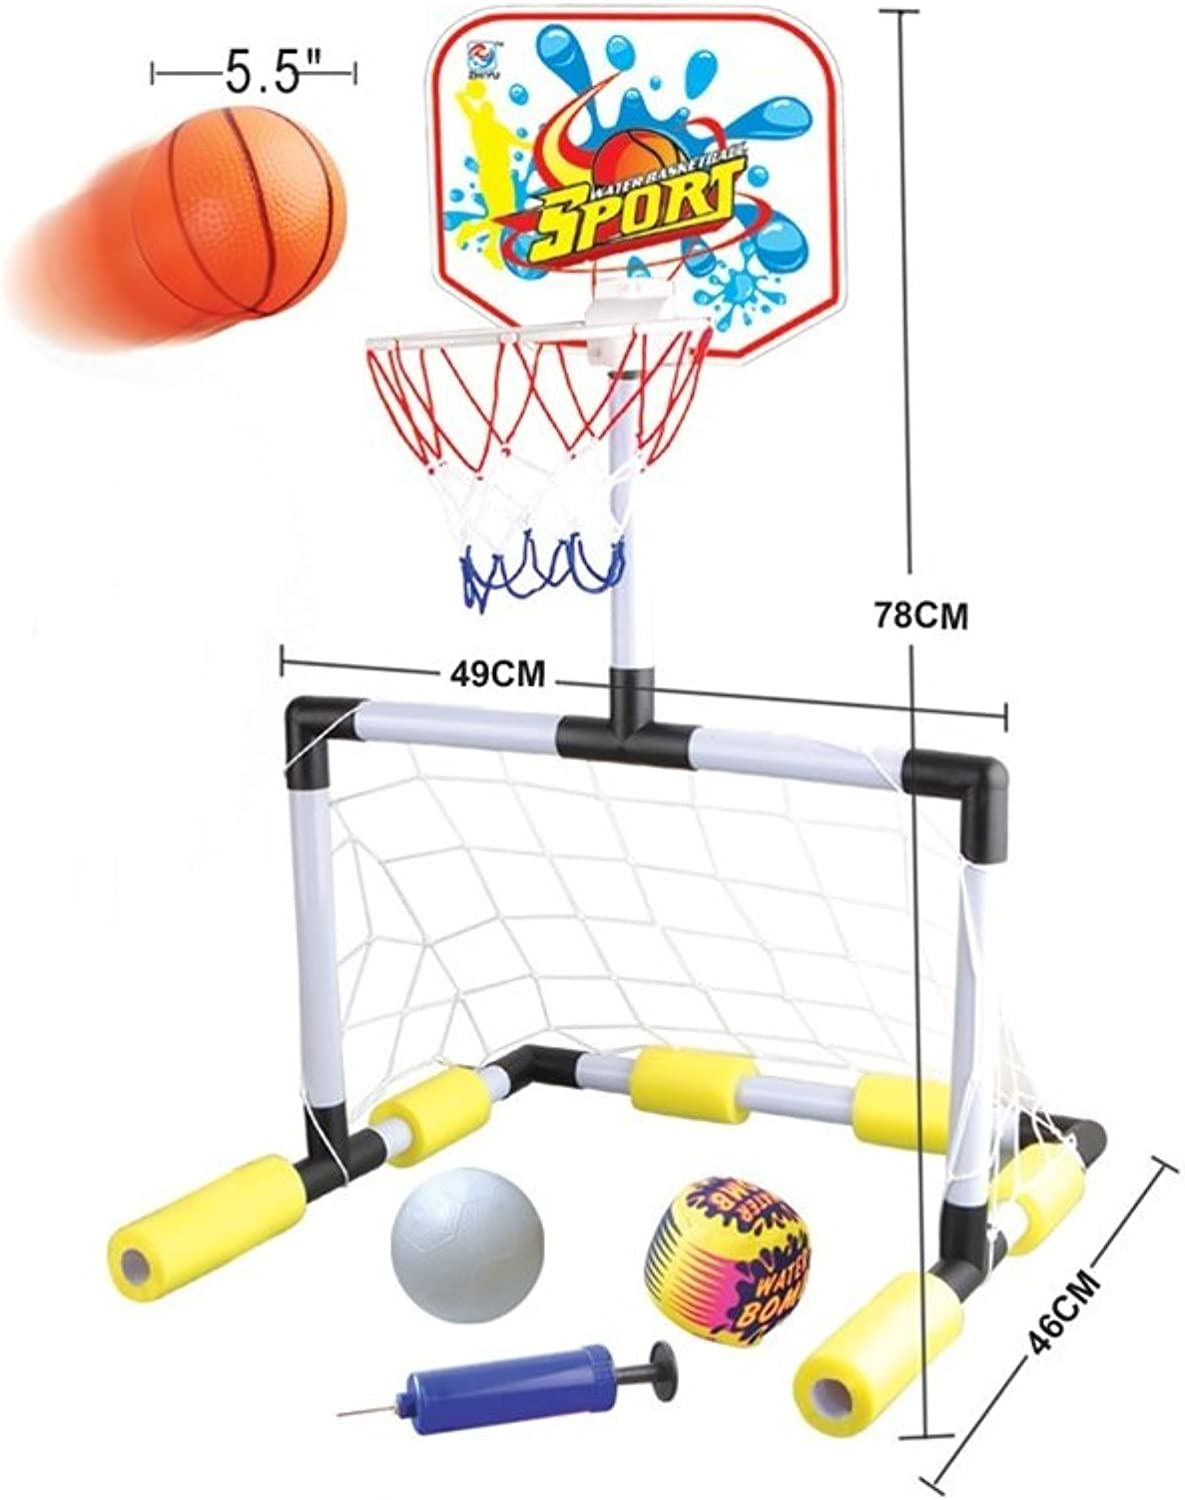 DoitY Floating 2 in 1 Basketball Hoop and Soccer Goal Pool Set with 2 Nets, 2 Small Inflatable Balls and Pump